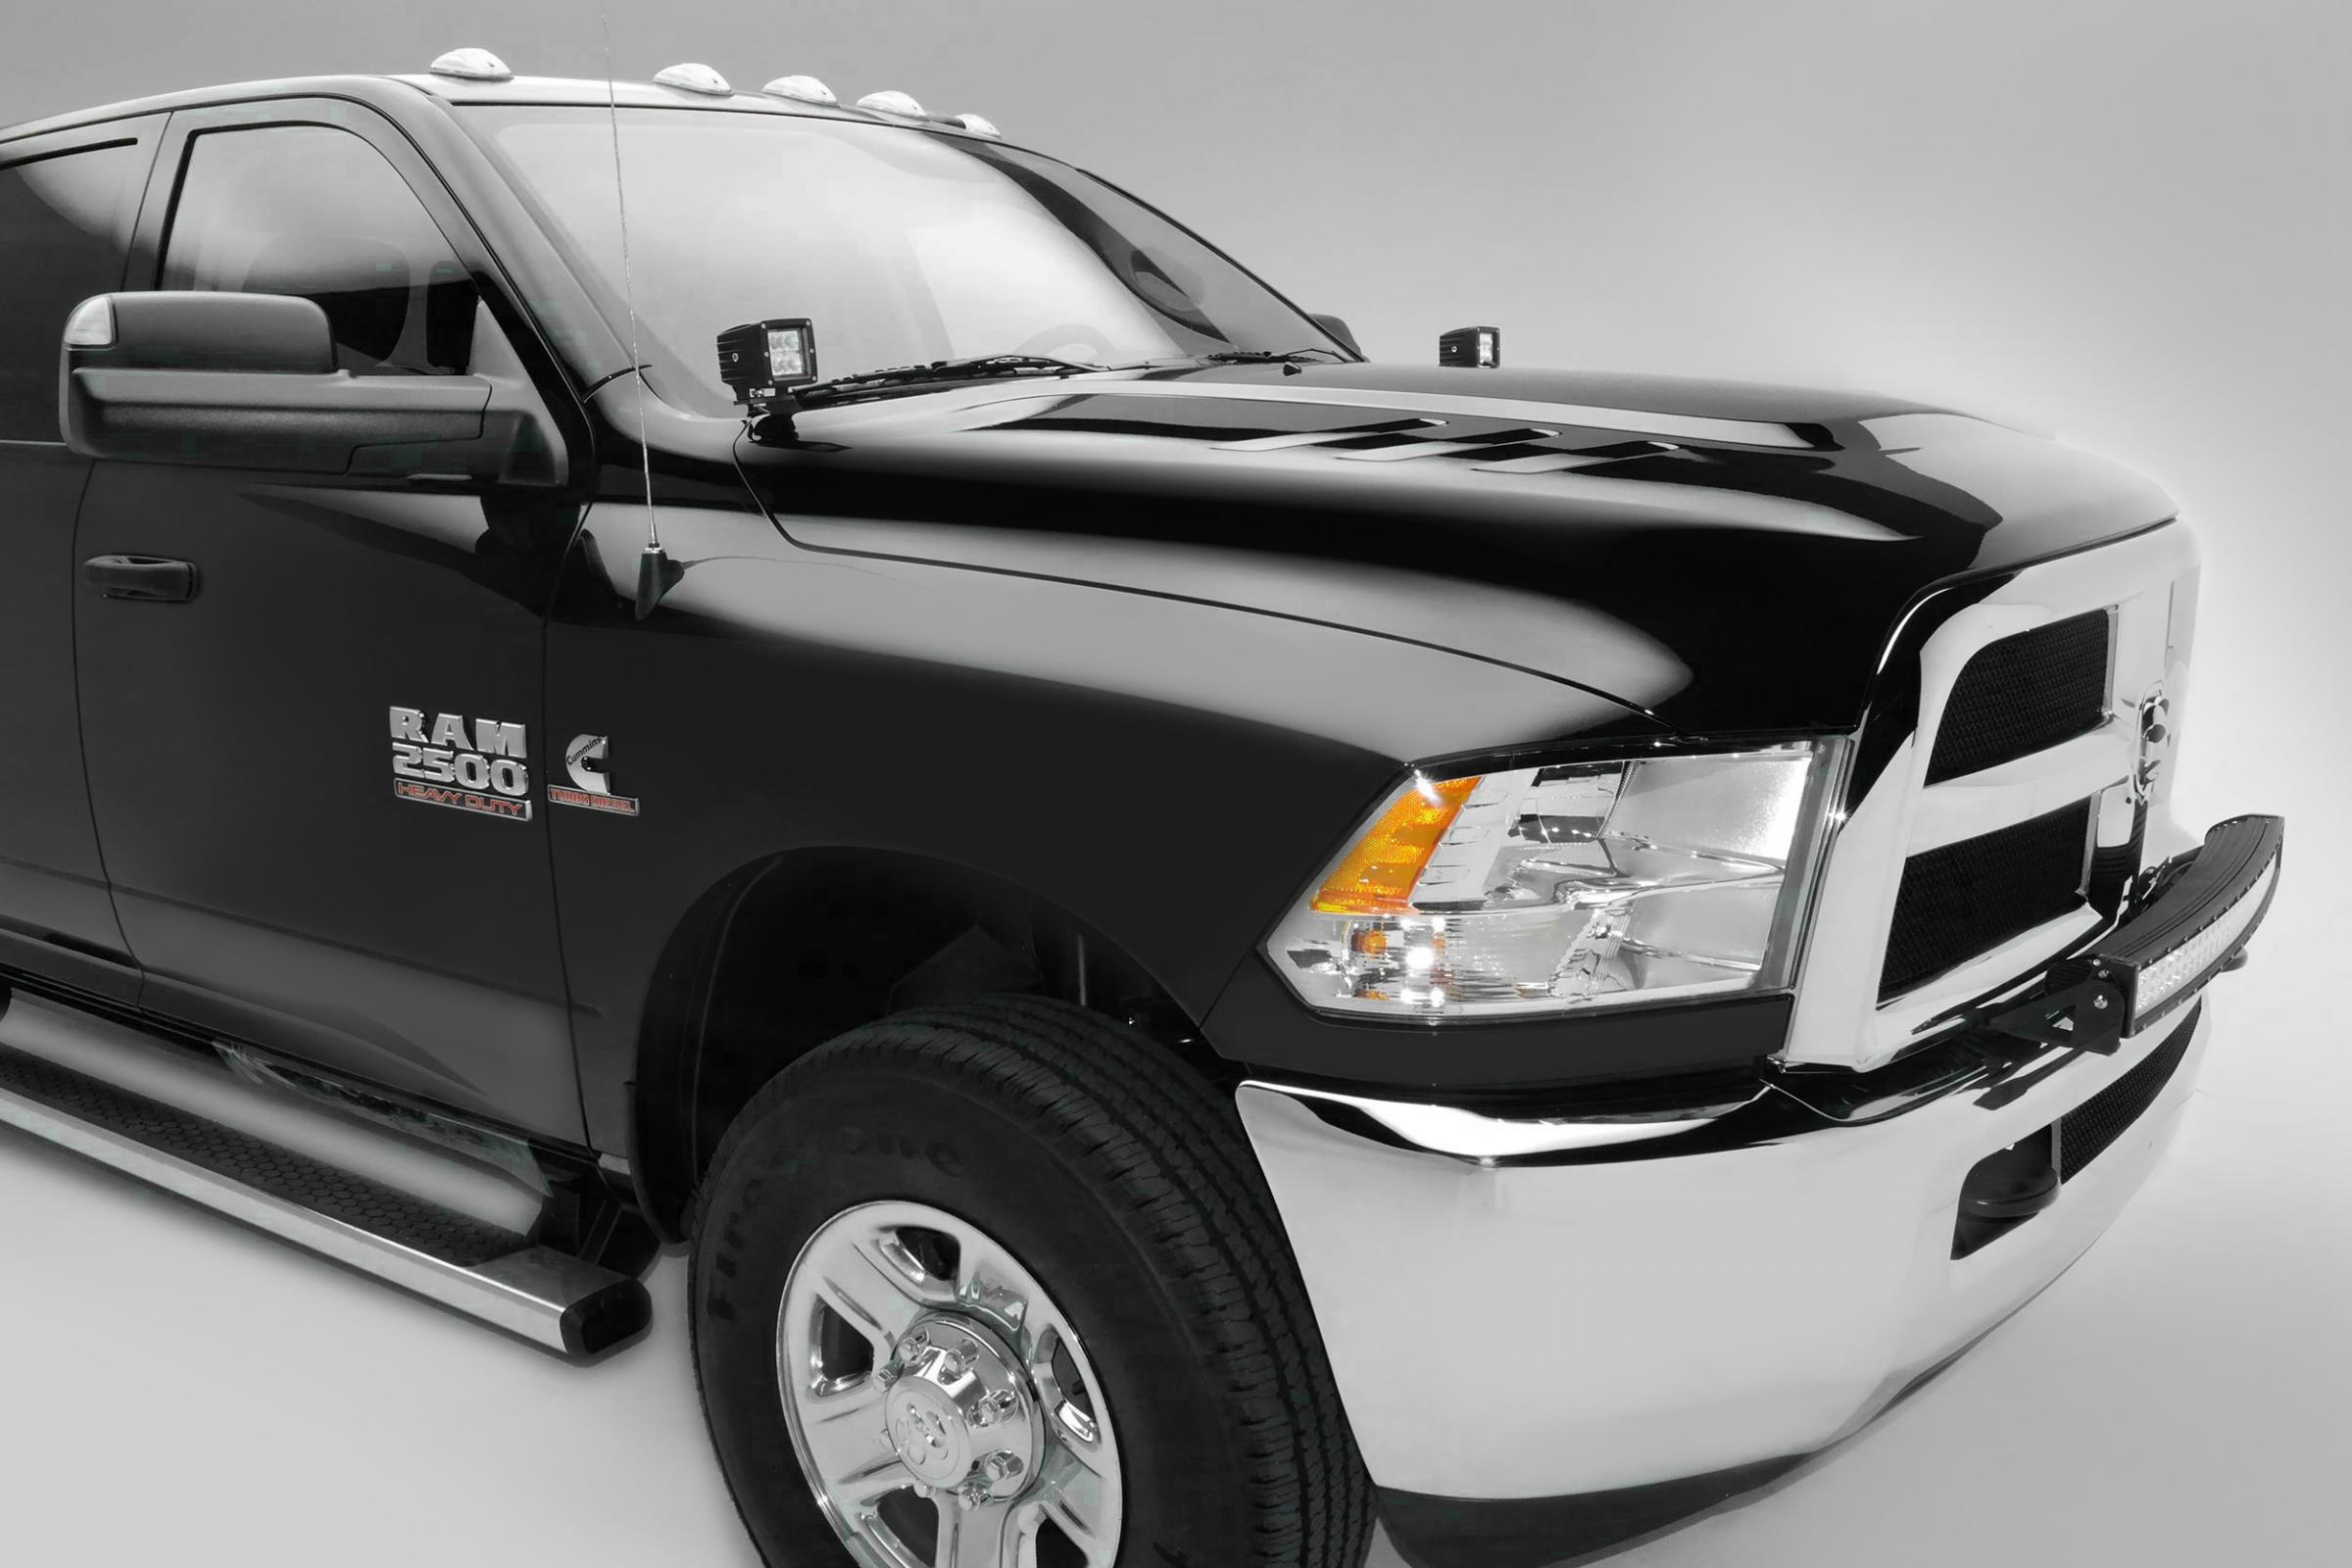 Front Bumper Top Led Light Bar Mount Kit 10 18 Dodge Ram 2500 3500 W Wiring Harness Roof View The Full Image